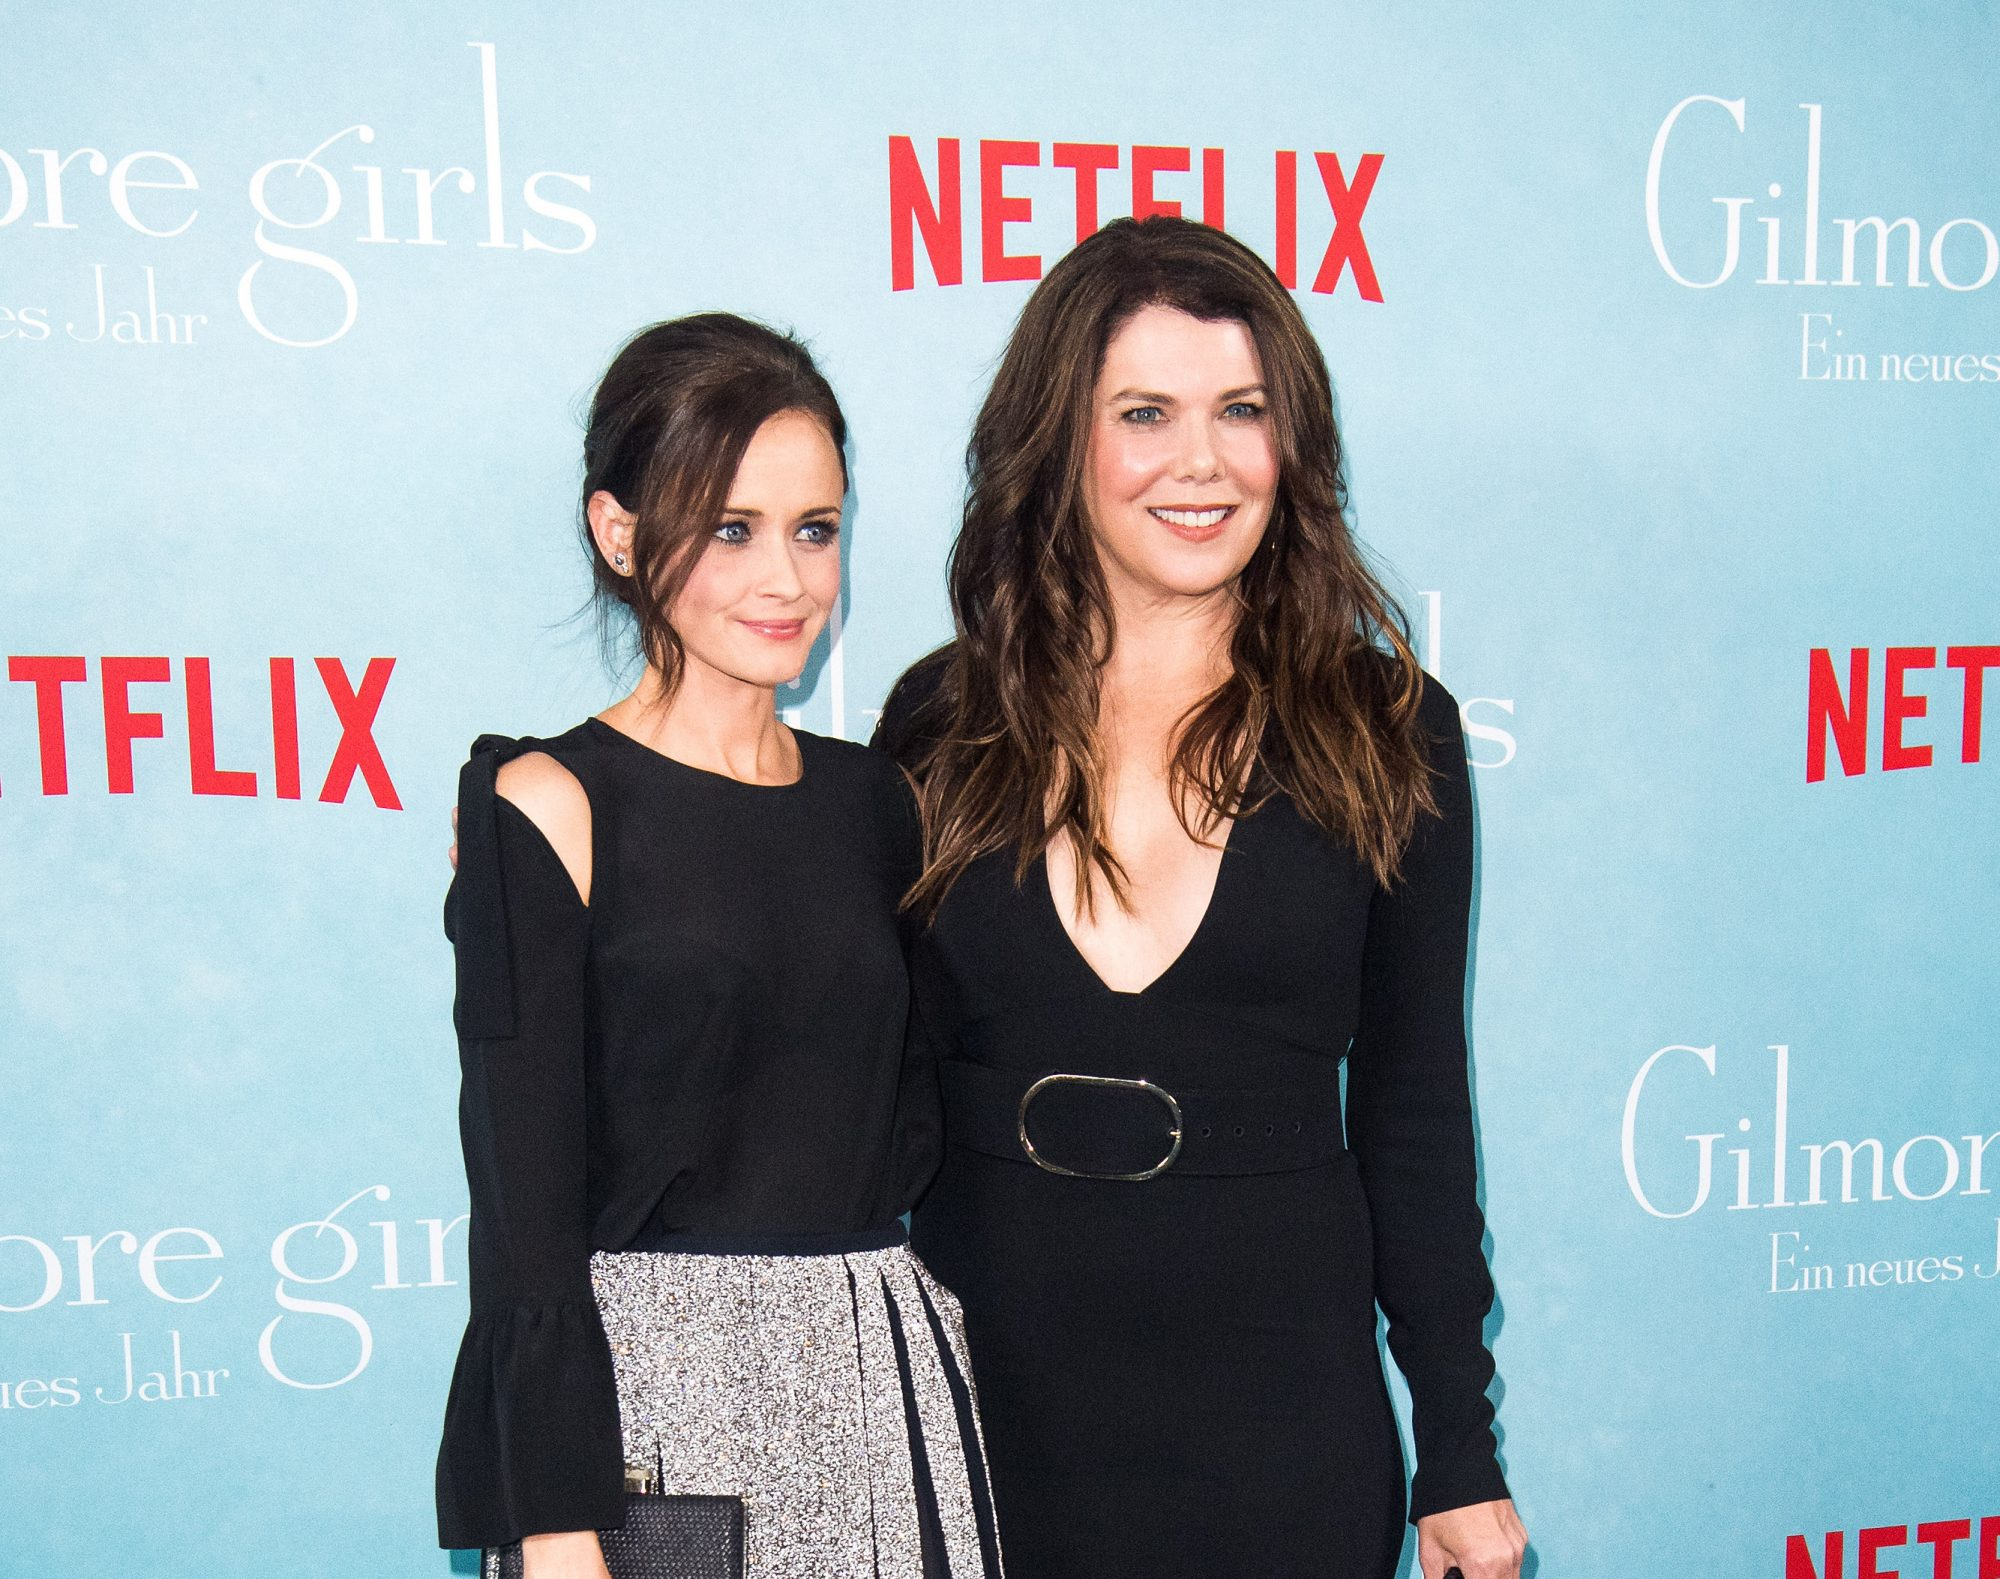 'Gilmore Girls' Fan Event In Berlin